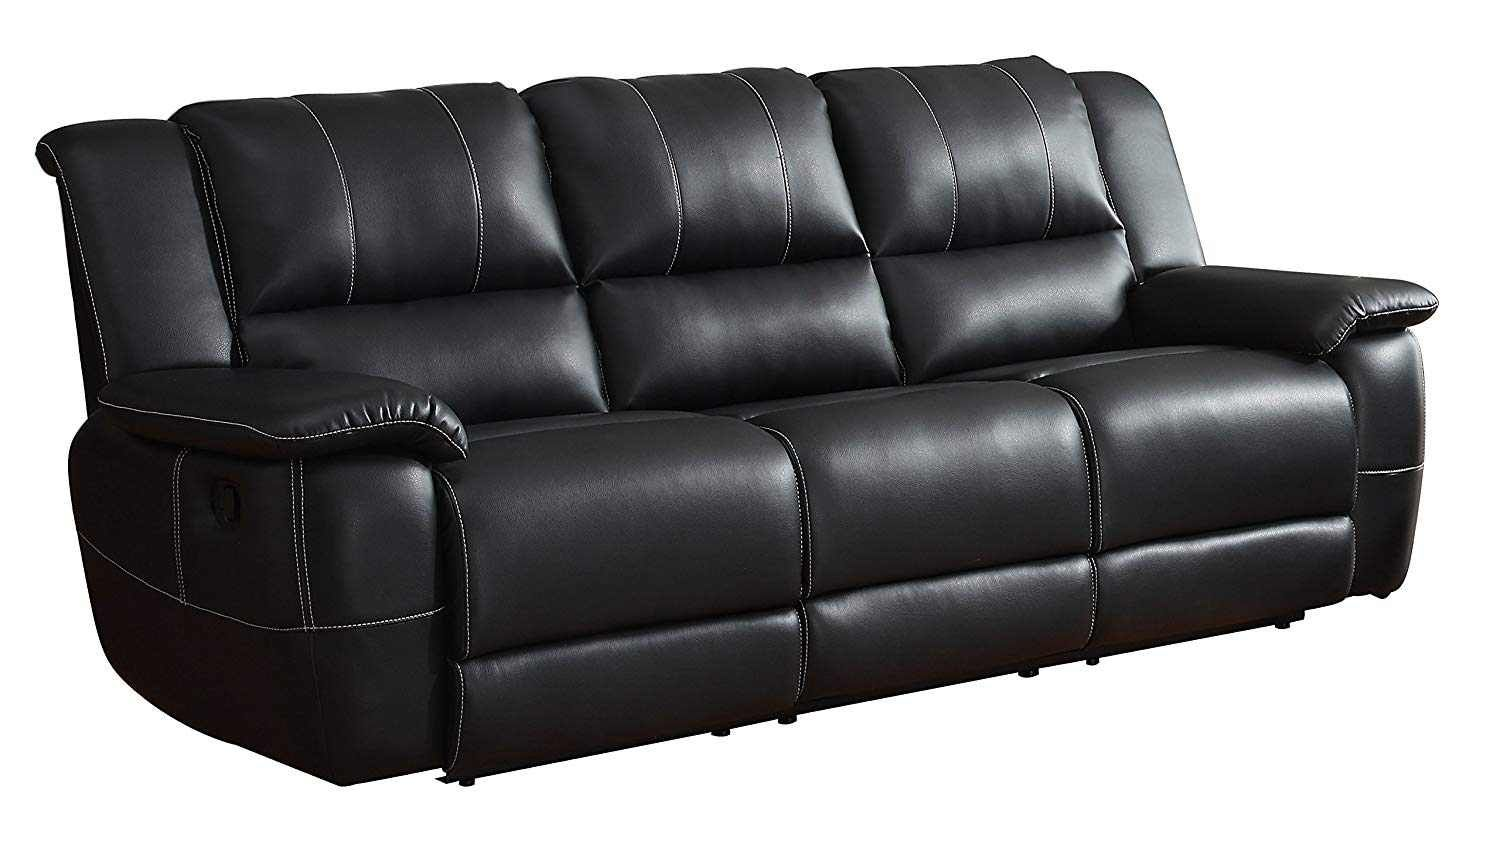 Toptencollections Has Selected The Top 10 Best Leather Reclining Sofas Out Of Hundreds Products In Market Last Updated October 2018